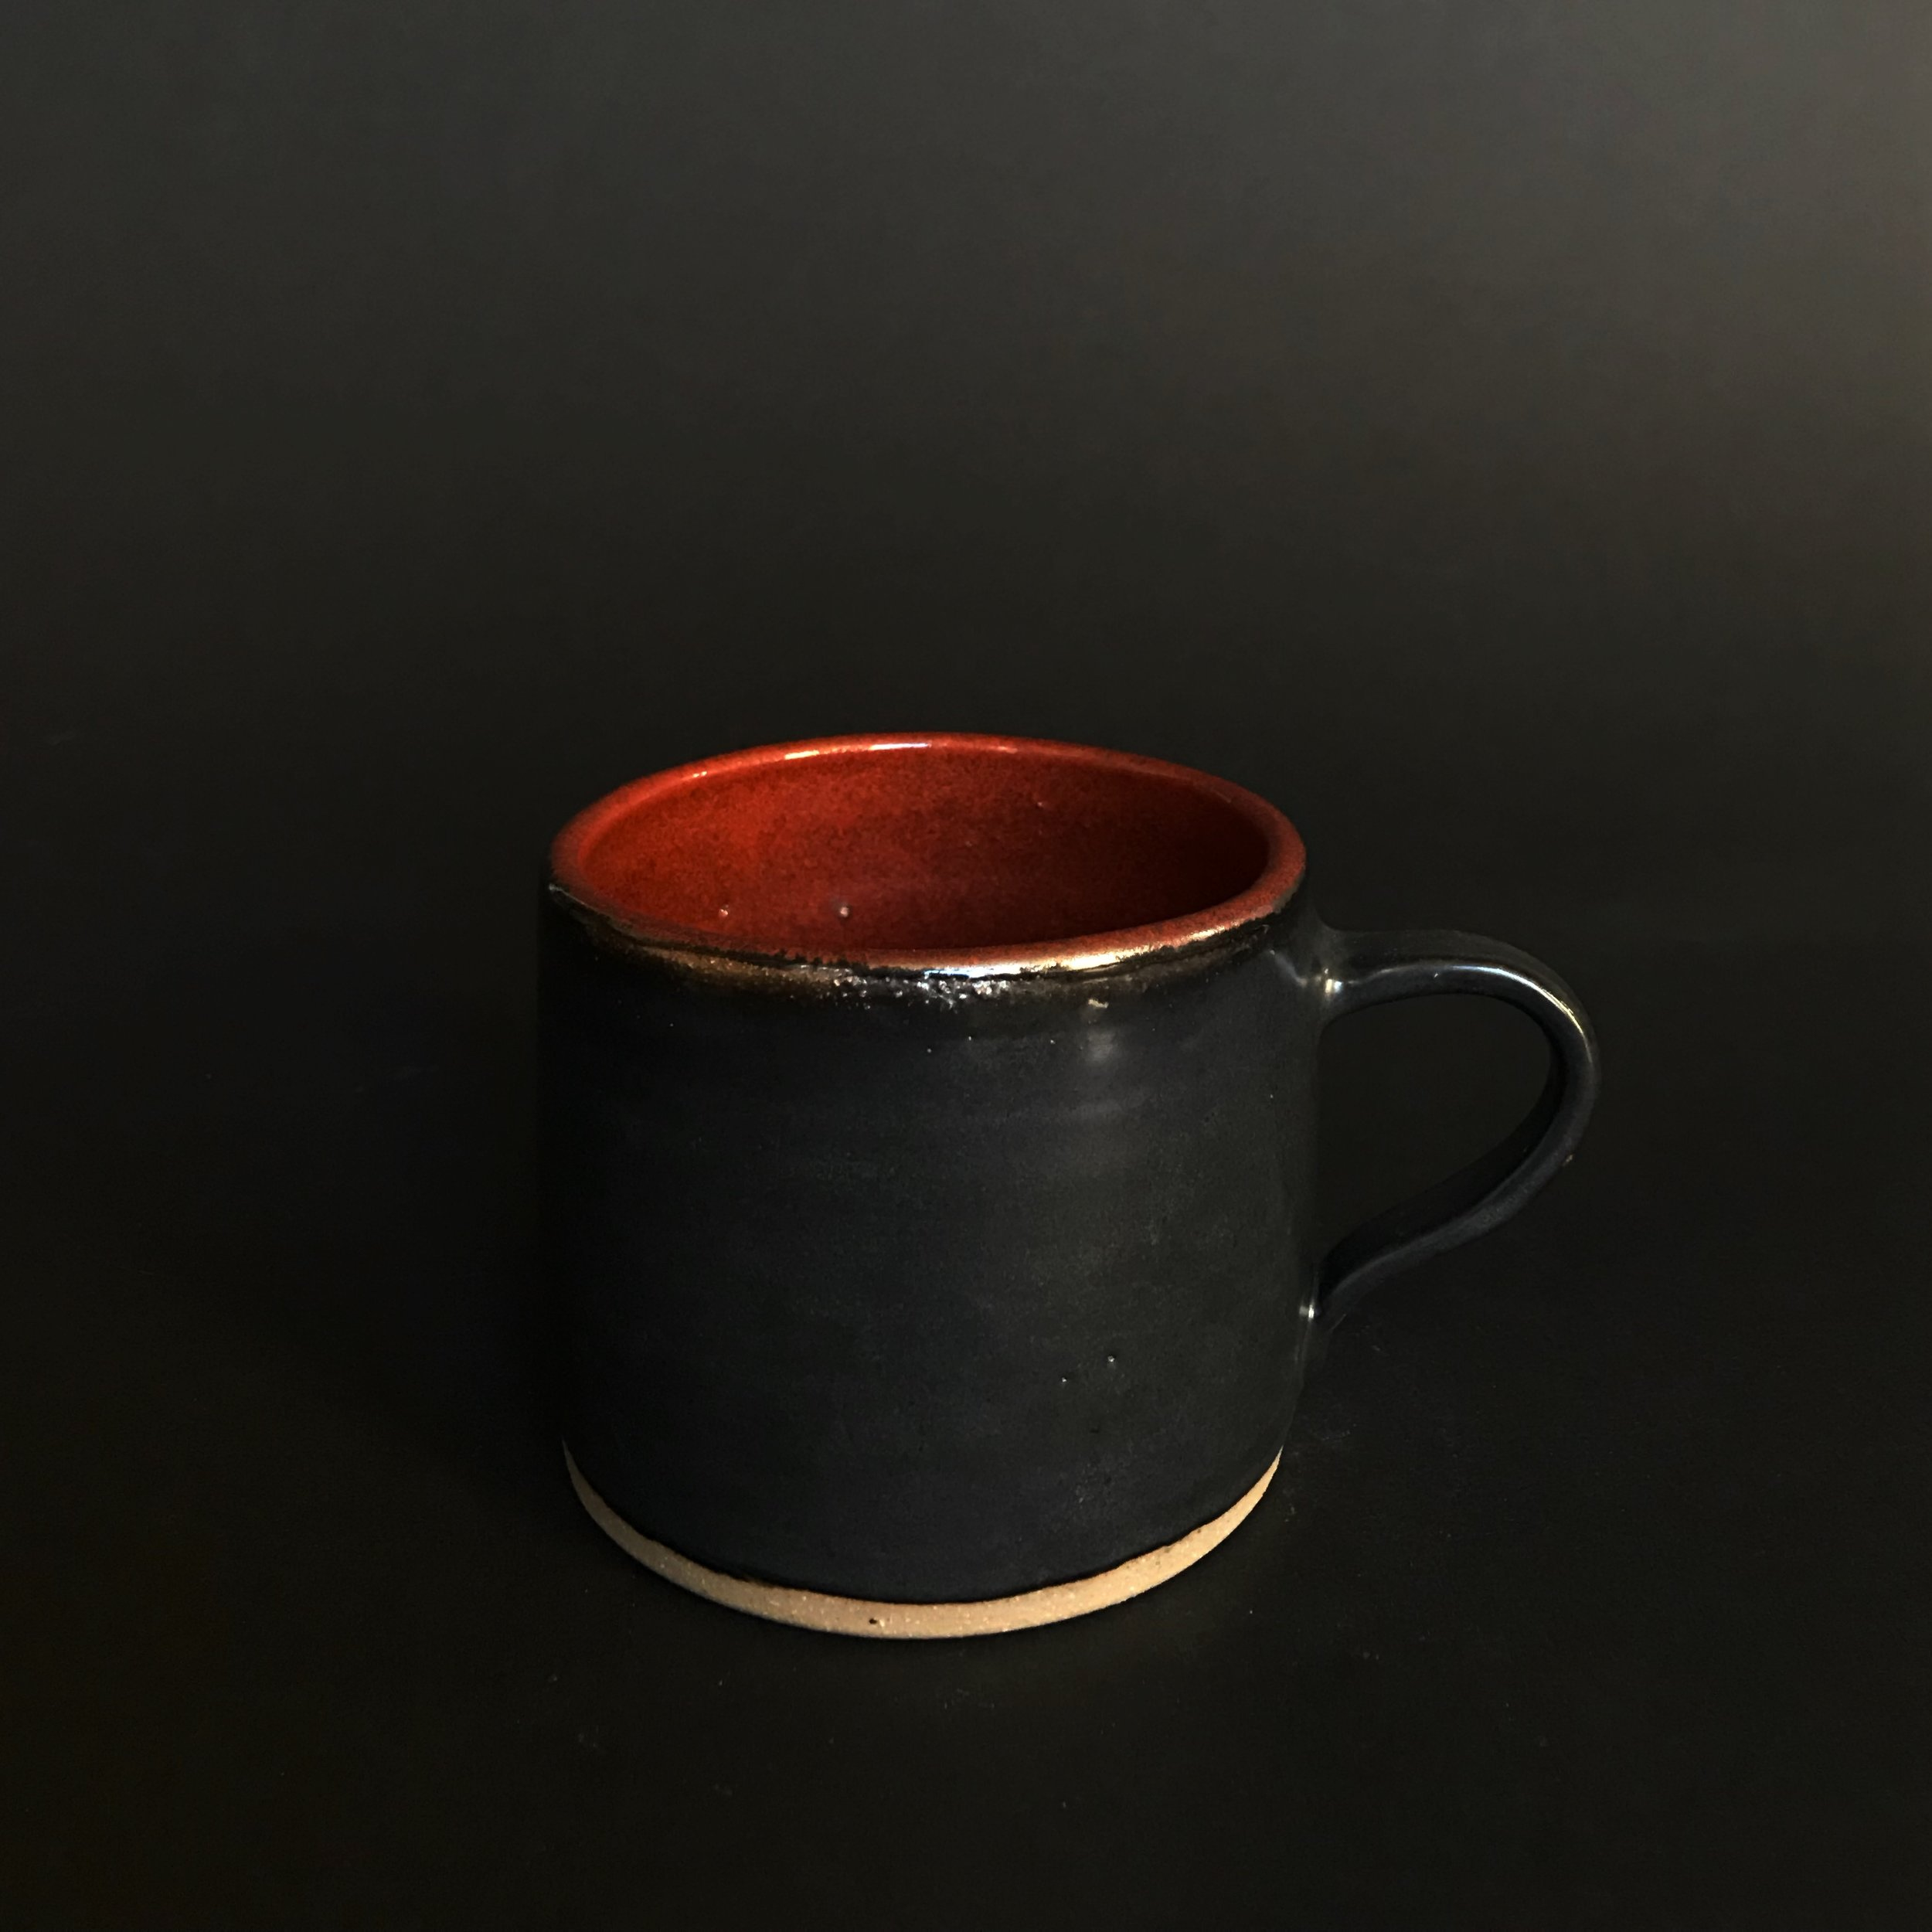 Stoneware mug in black and red.